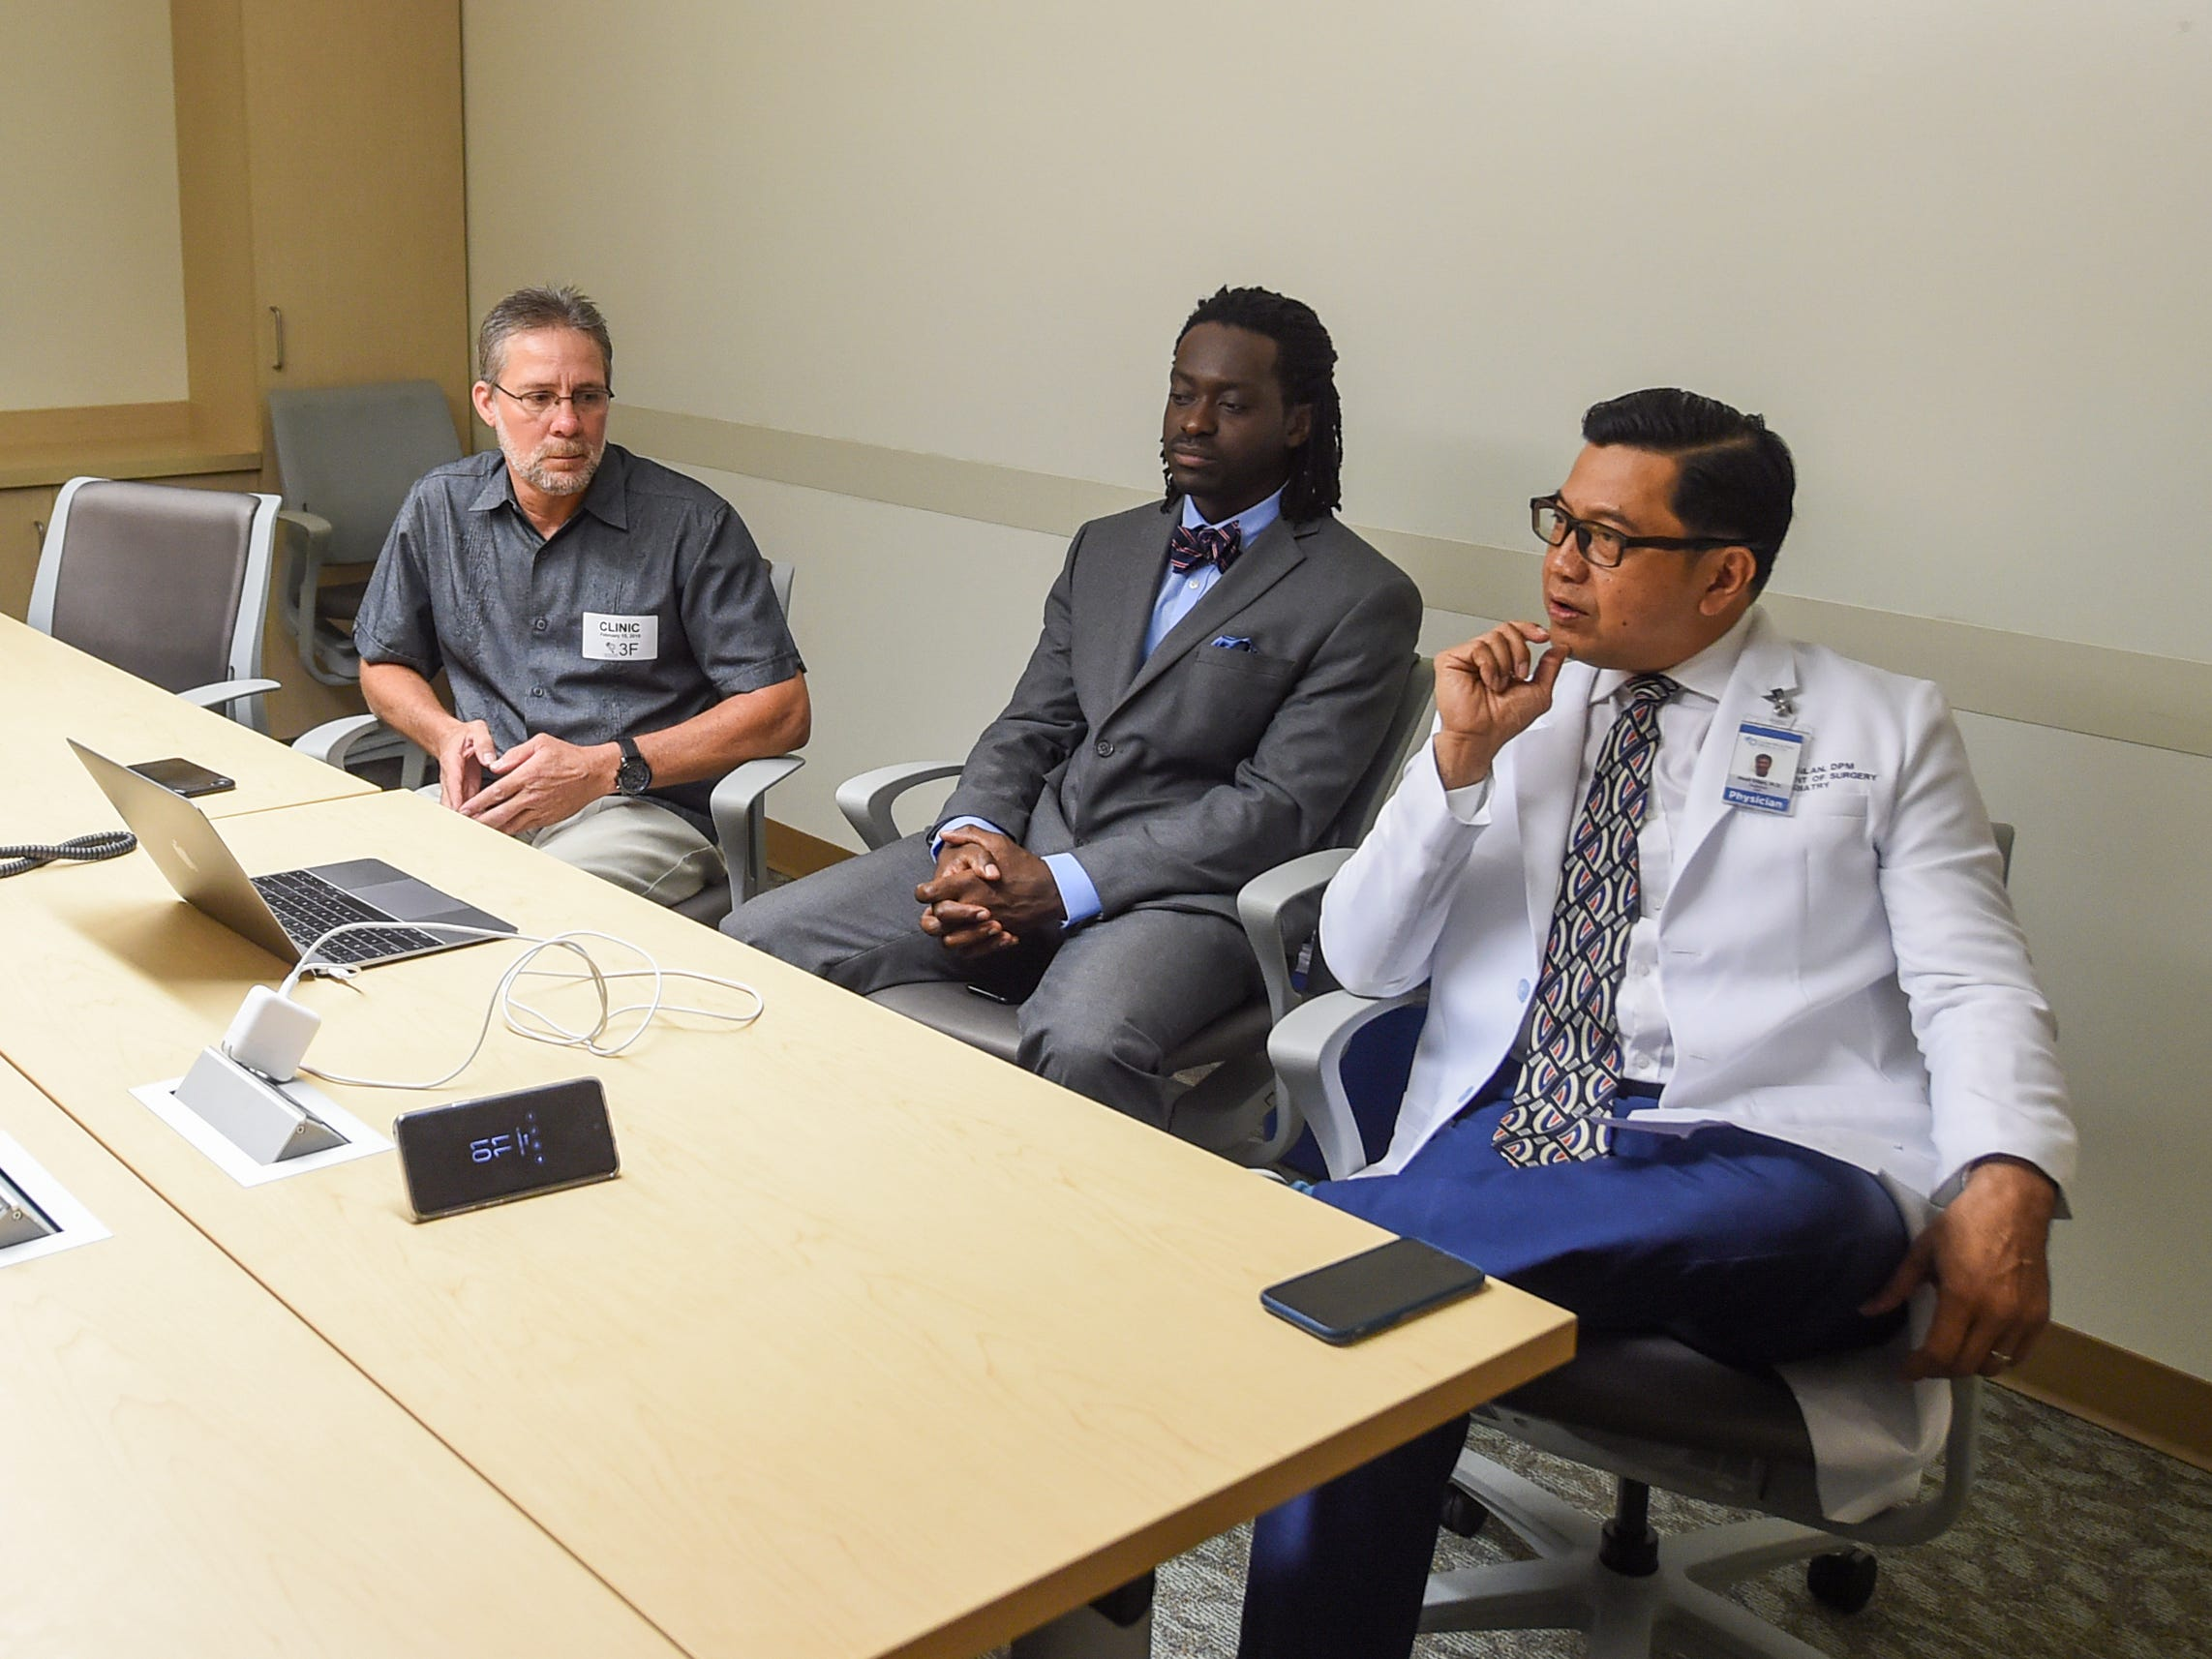 Dr. Noel Silan, right, with Dr. Kwasi Nyame, center, and Cano Collazo-Cruz, discusses the procedure that removed a tumor from the right leg of Collazo-Cruz, during an interview at the Guam Regional Medical City on Feb. 15, 2019.